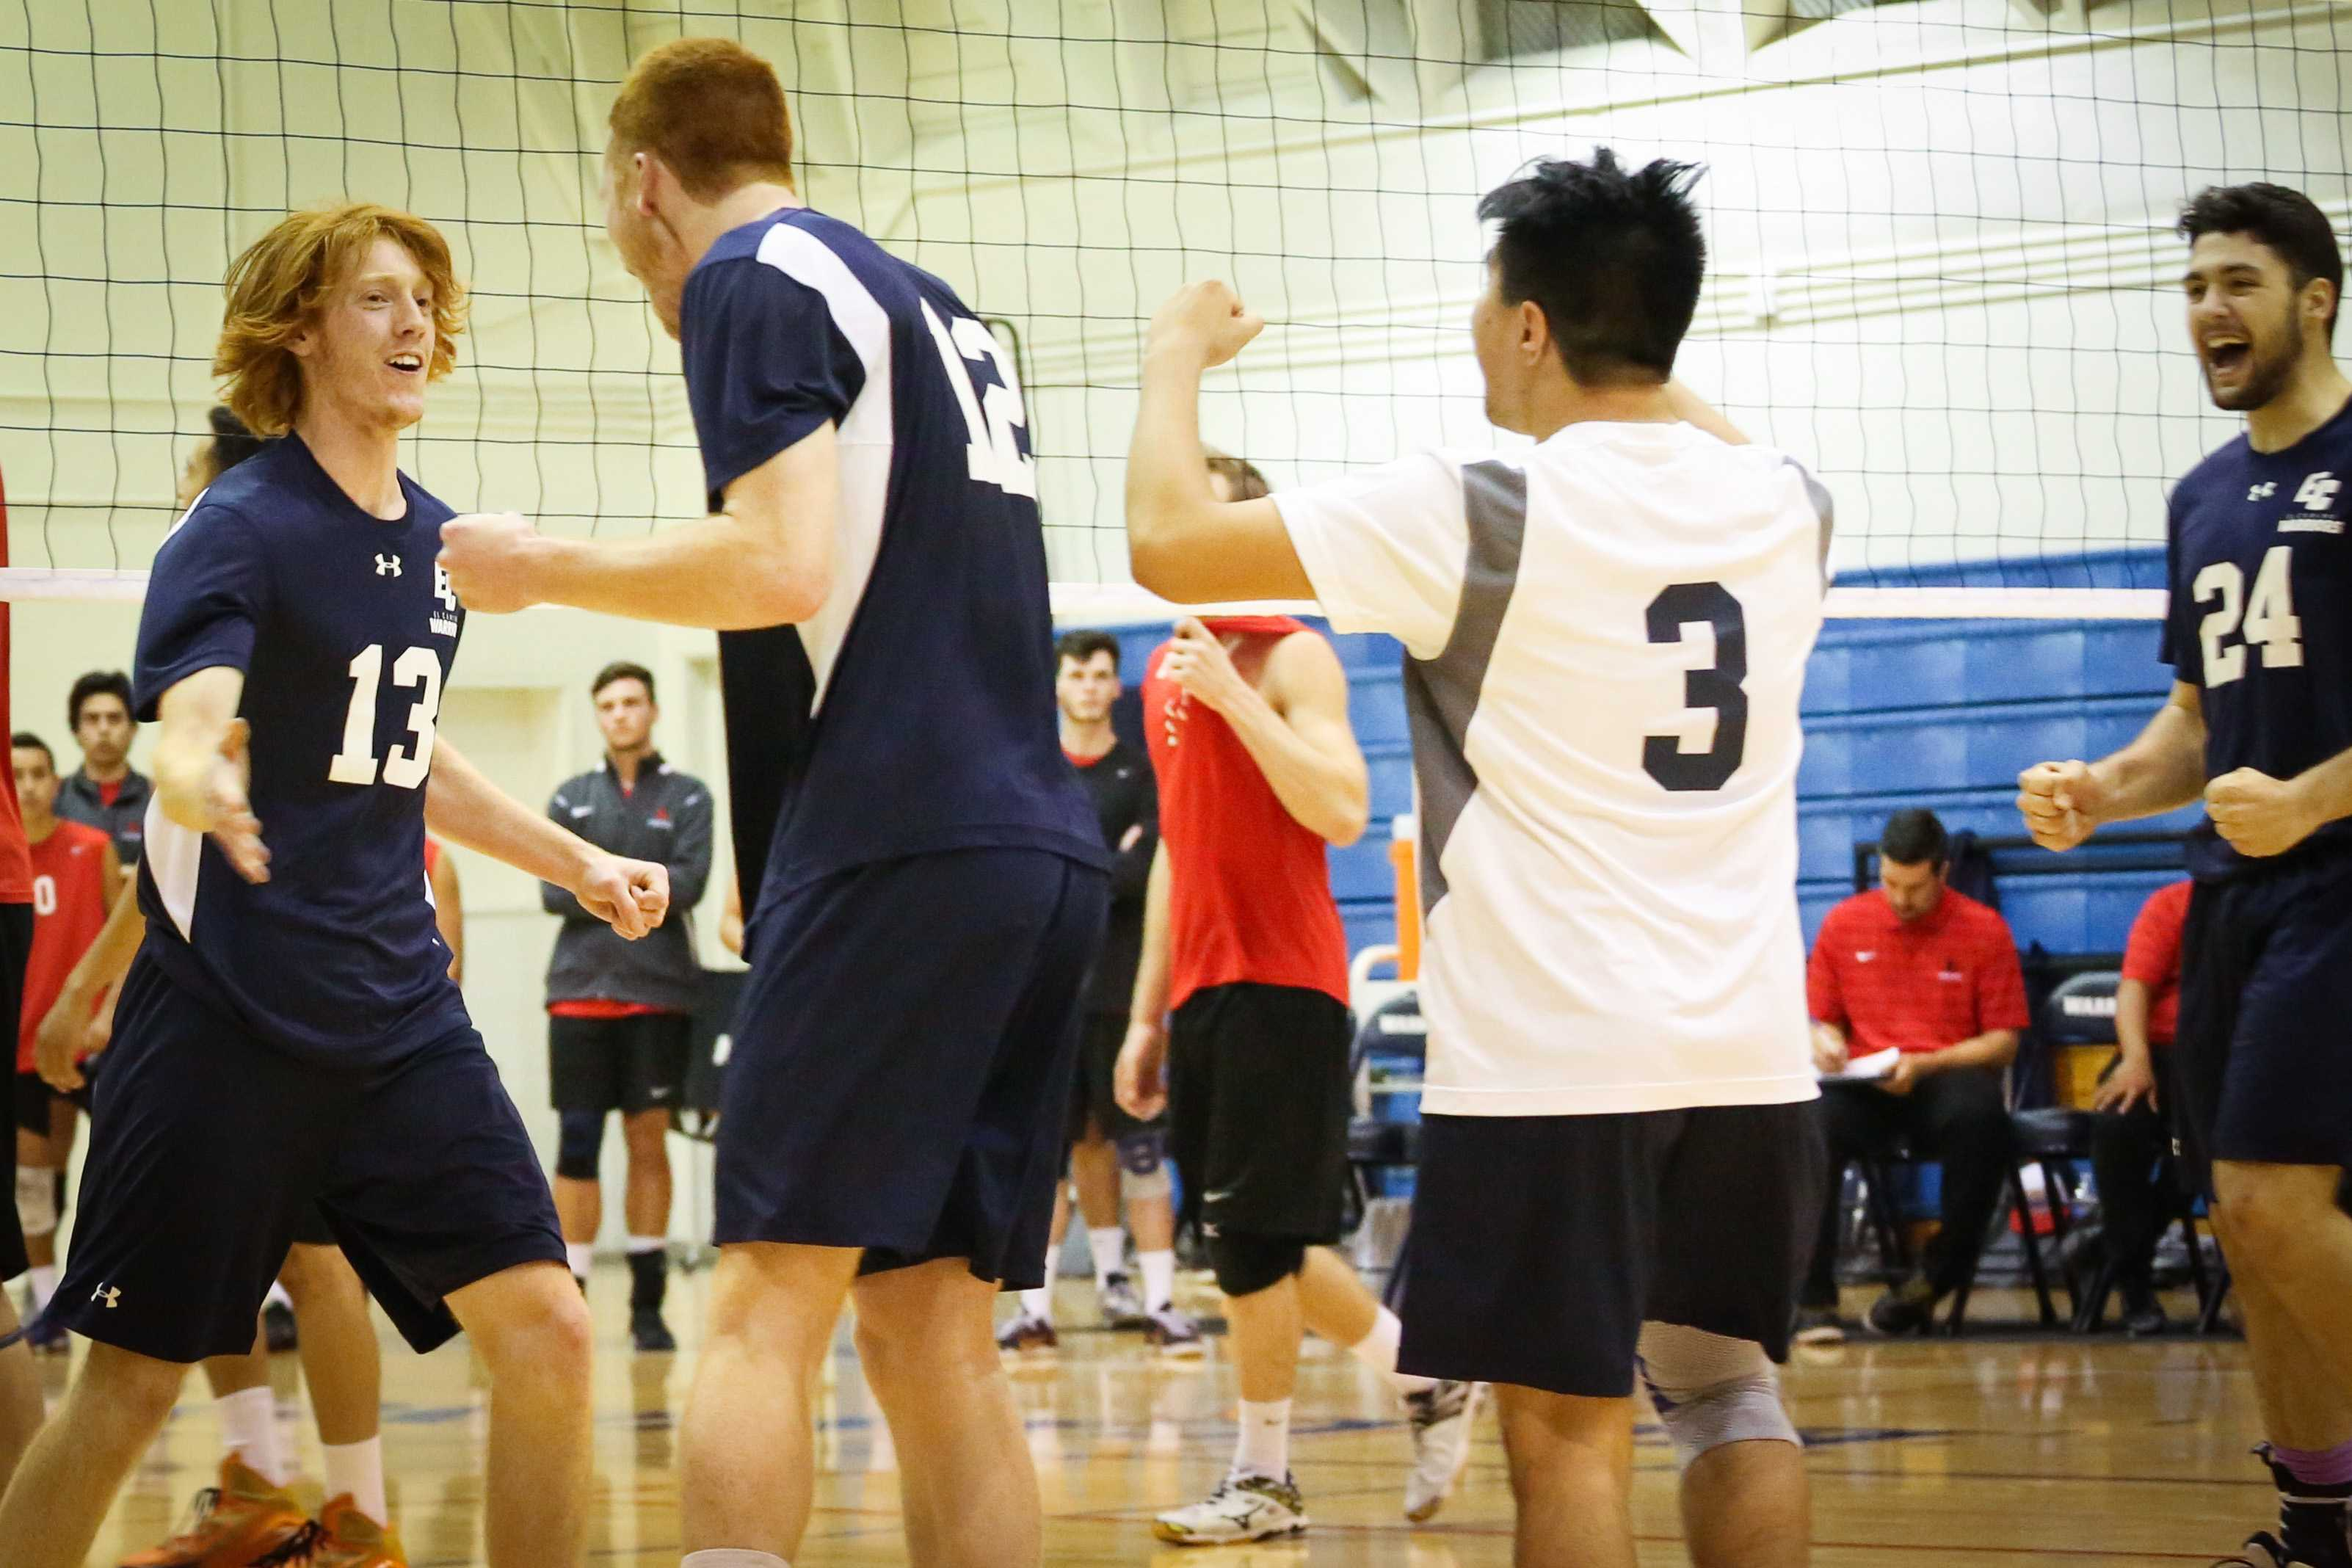 Up next for men's volleyball team: First round of playoffs at Golden West College on Friday